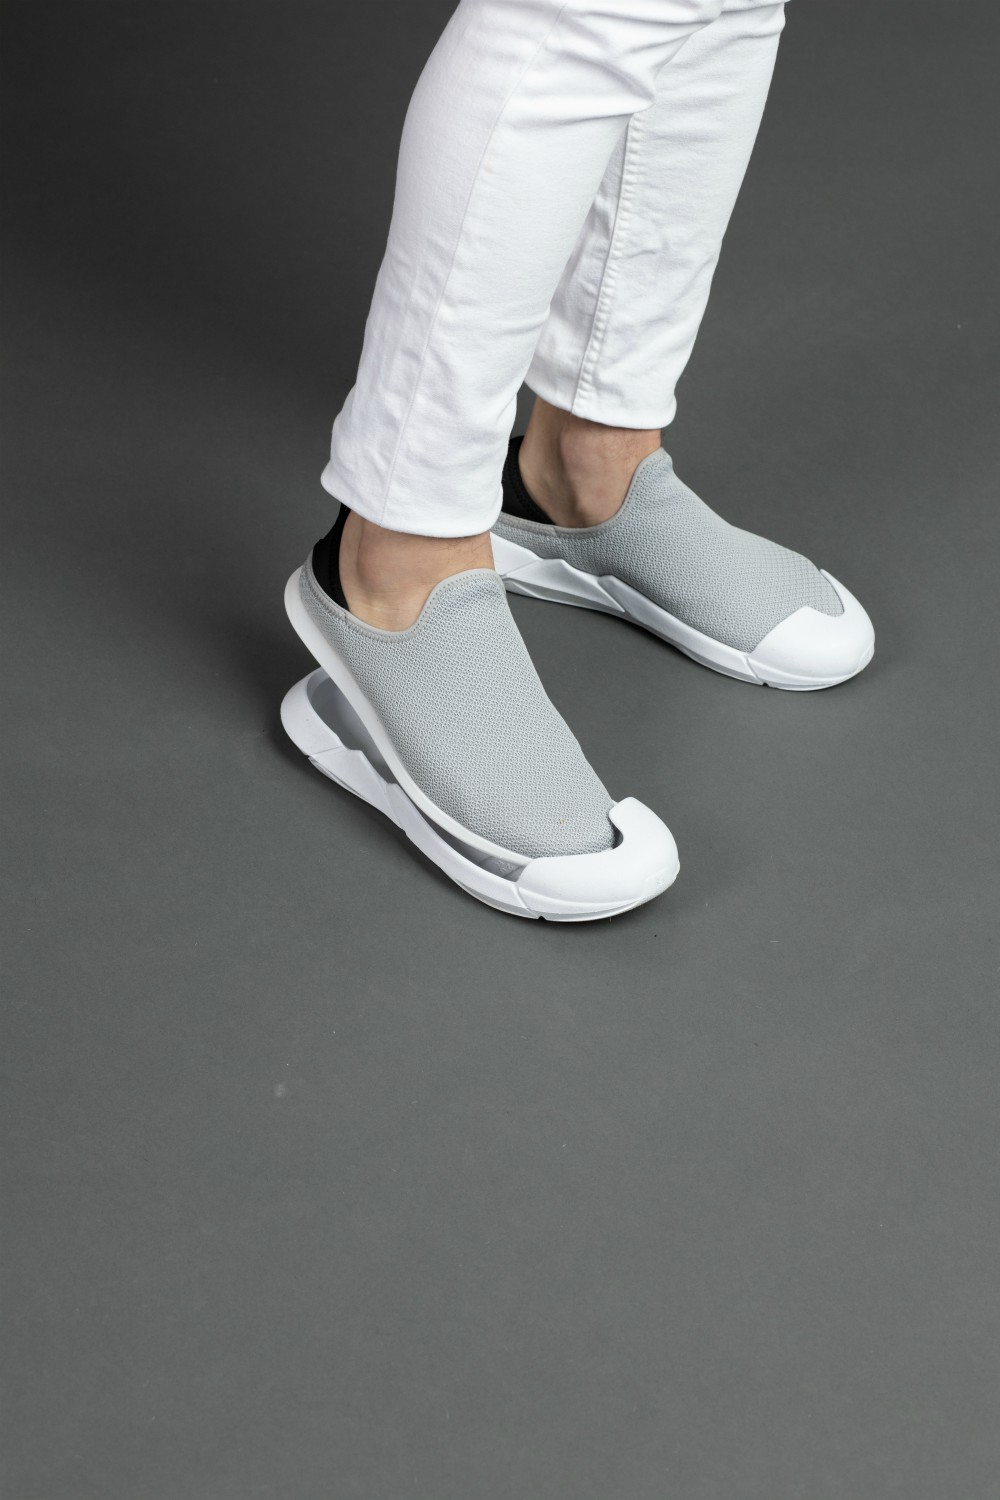 Muvez' indoor-outdoor slip-ons have a removable outsole to keep germs from entering wearers' homes.